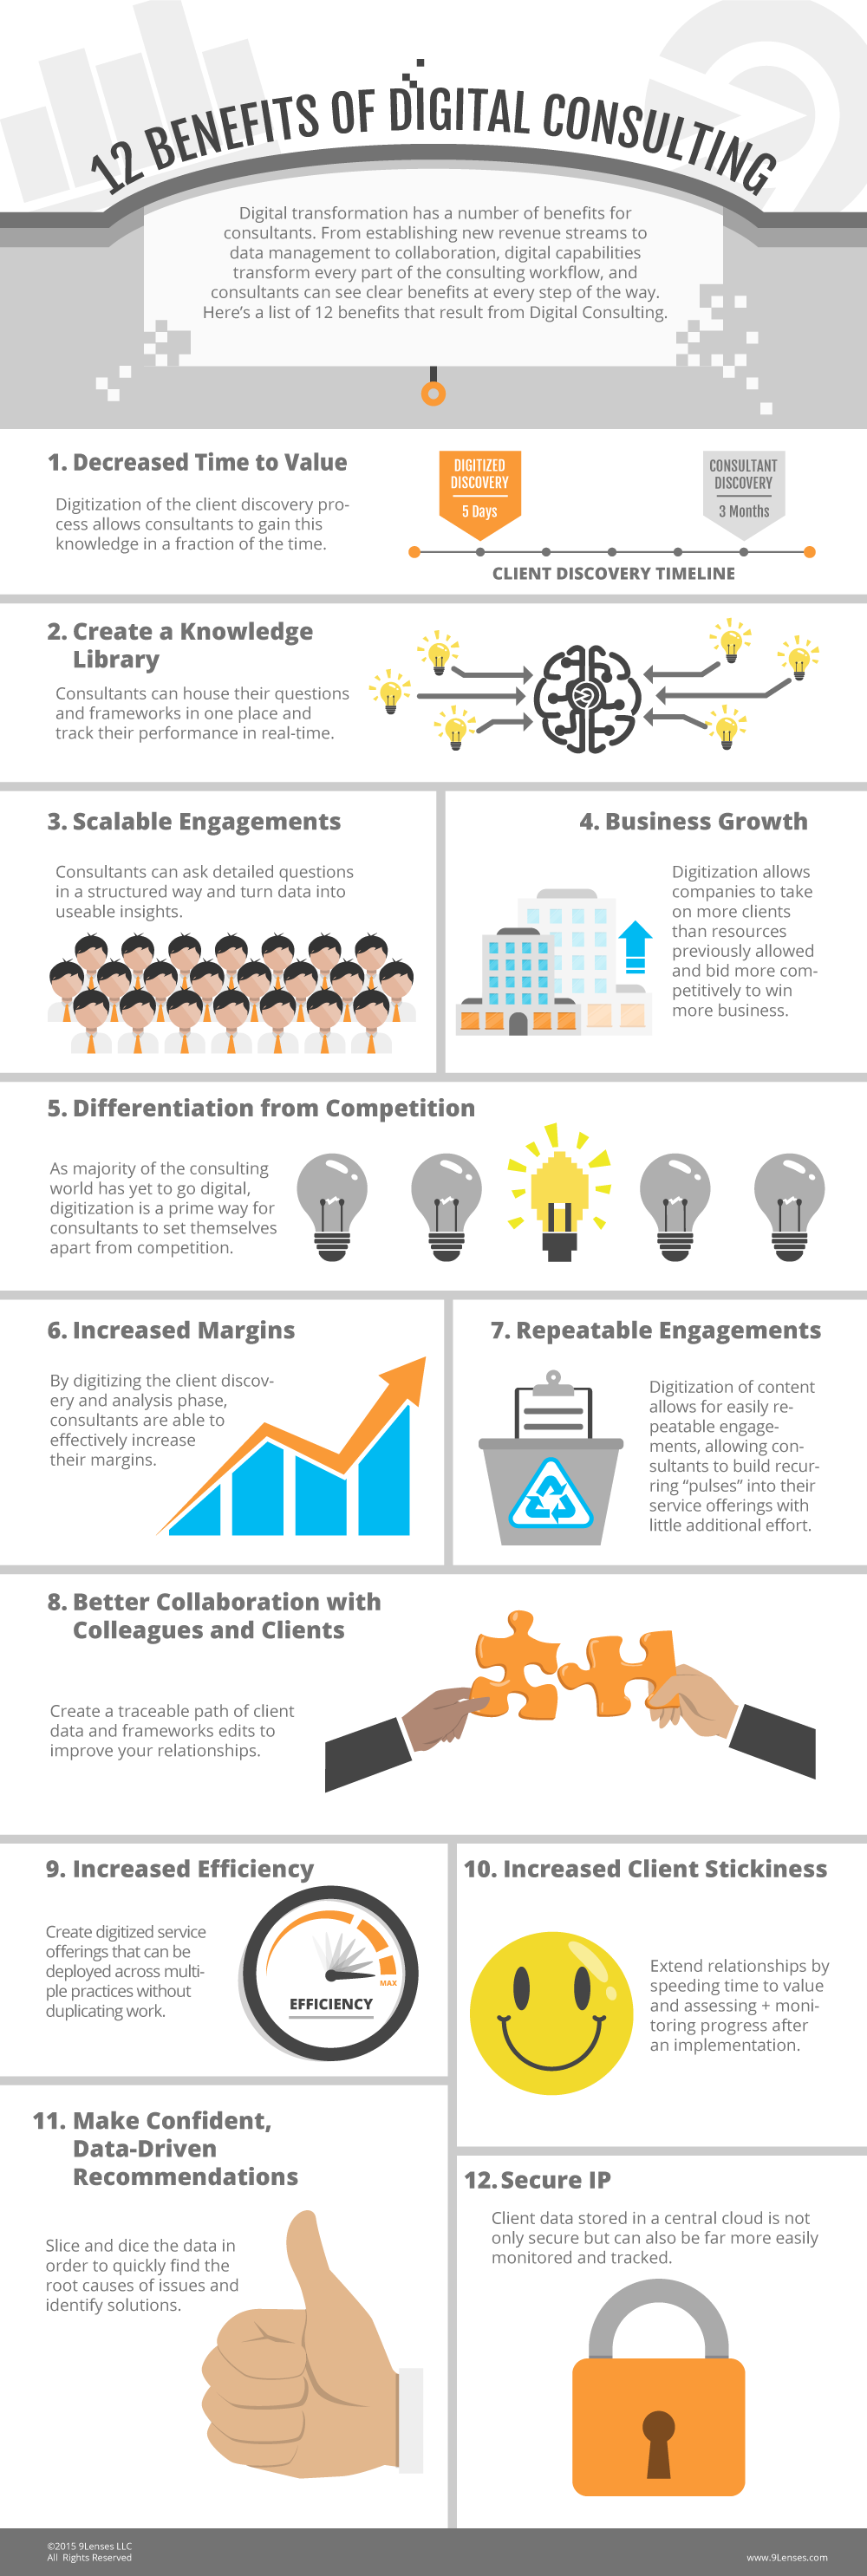 12-Benefits-of-Digital-Consulting_UPDATED-v.2.png